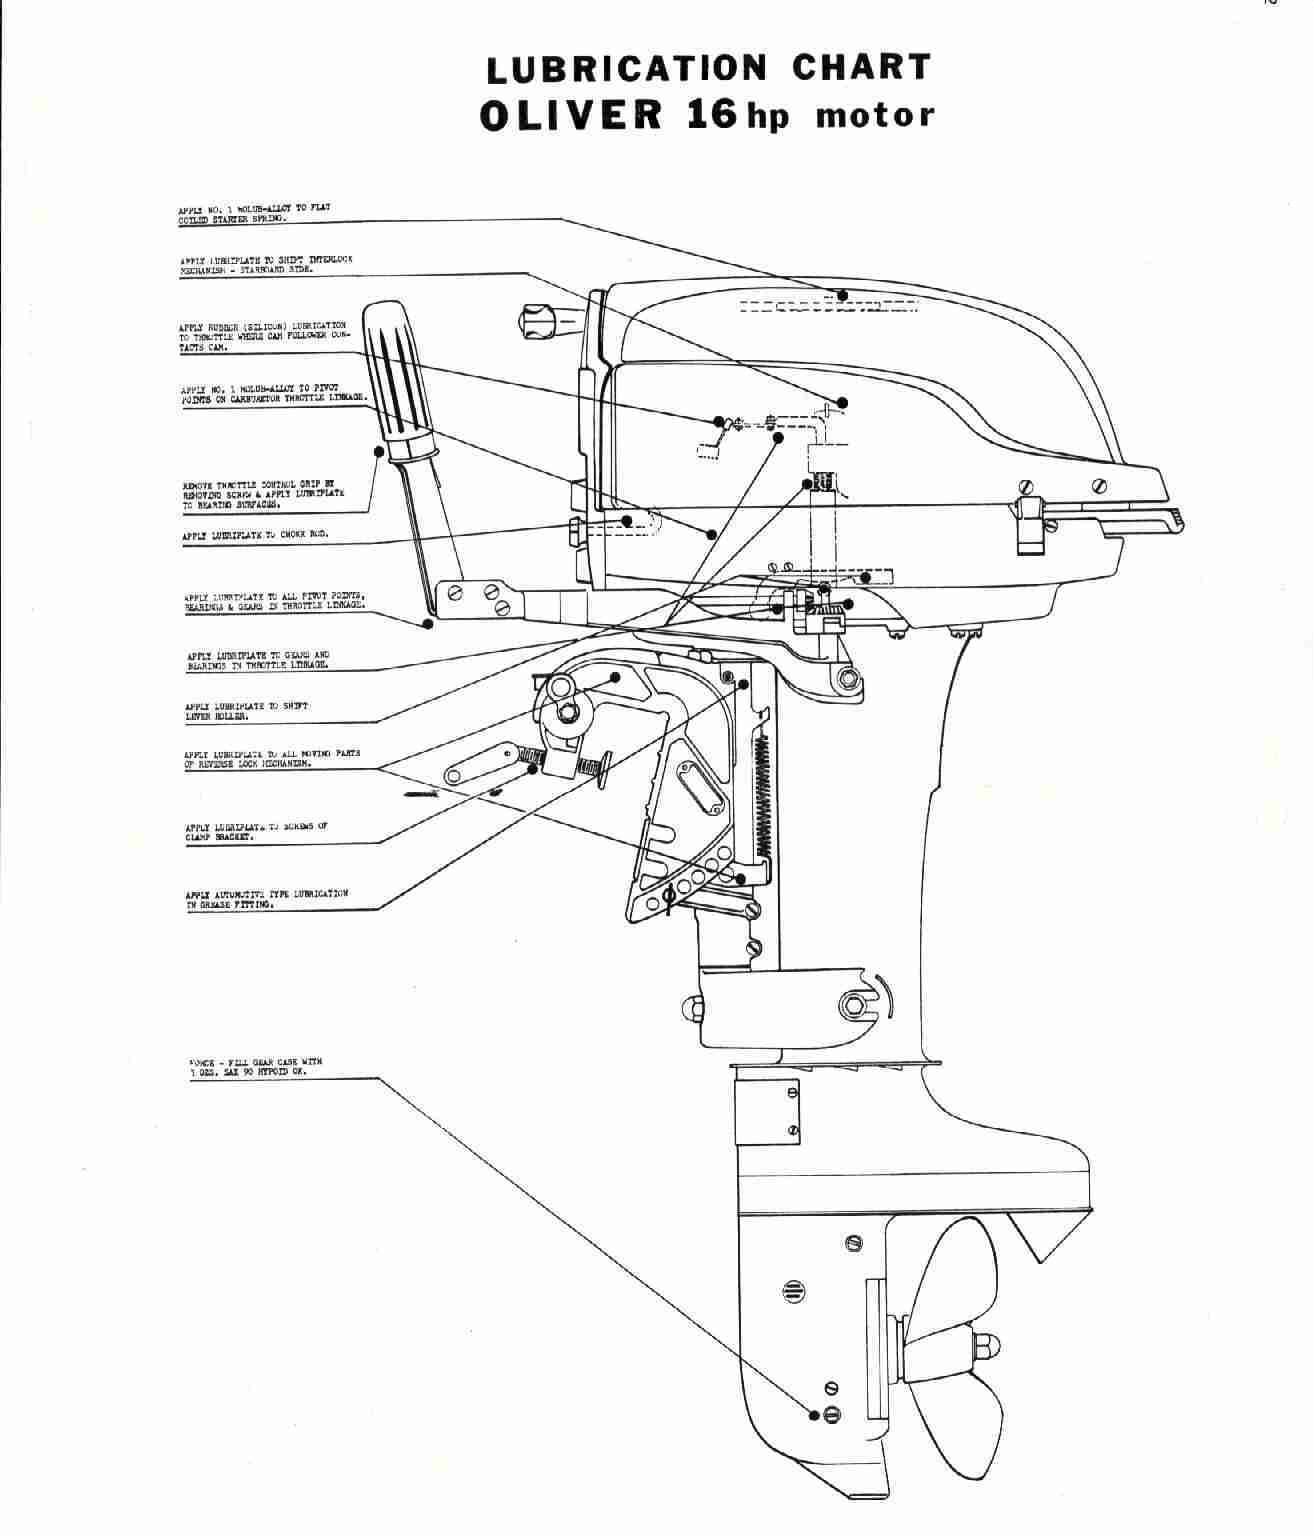 Oliver Outboard Motors Cyberspace Museum Viewer